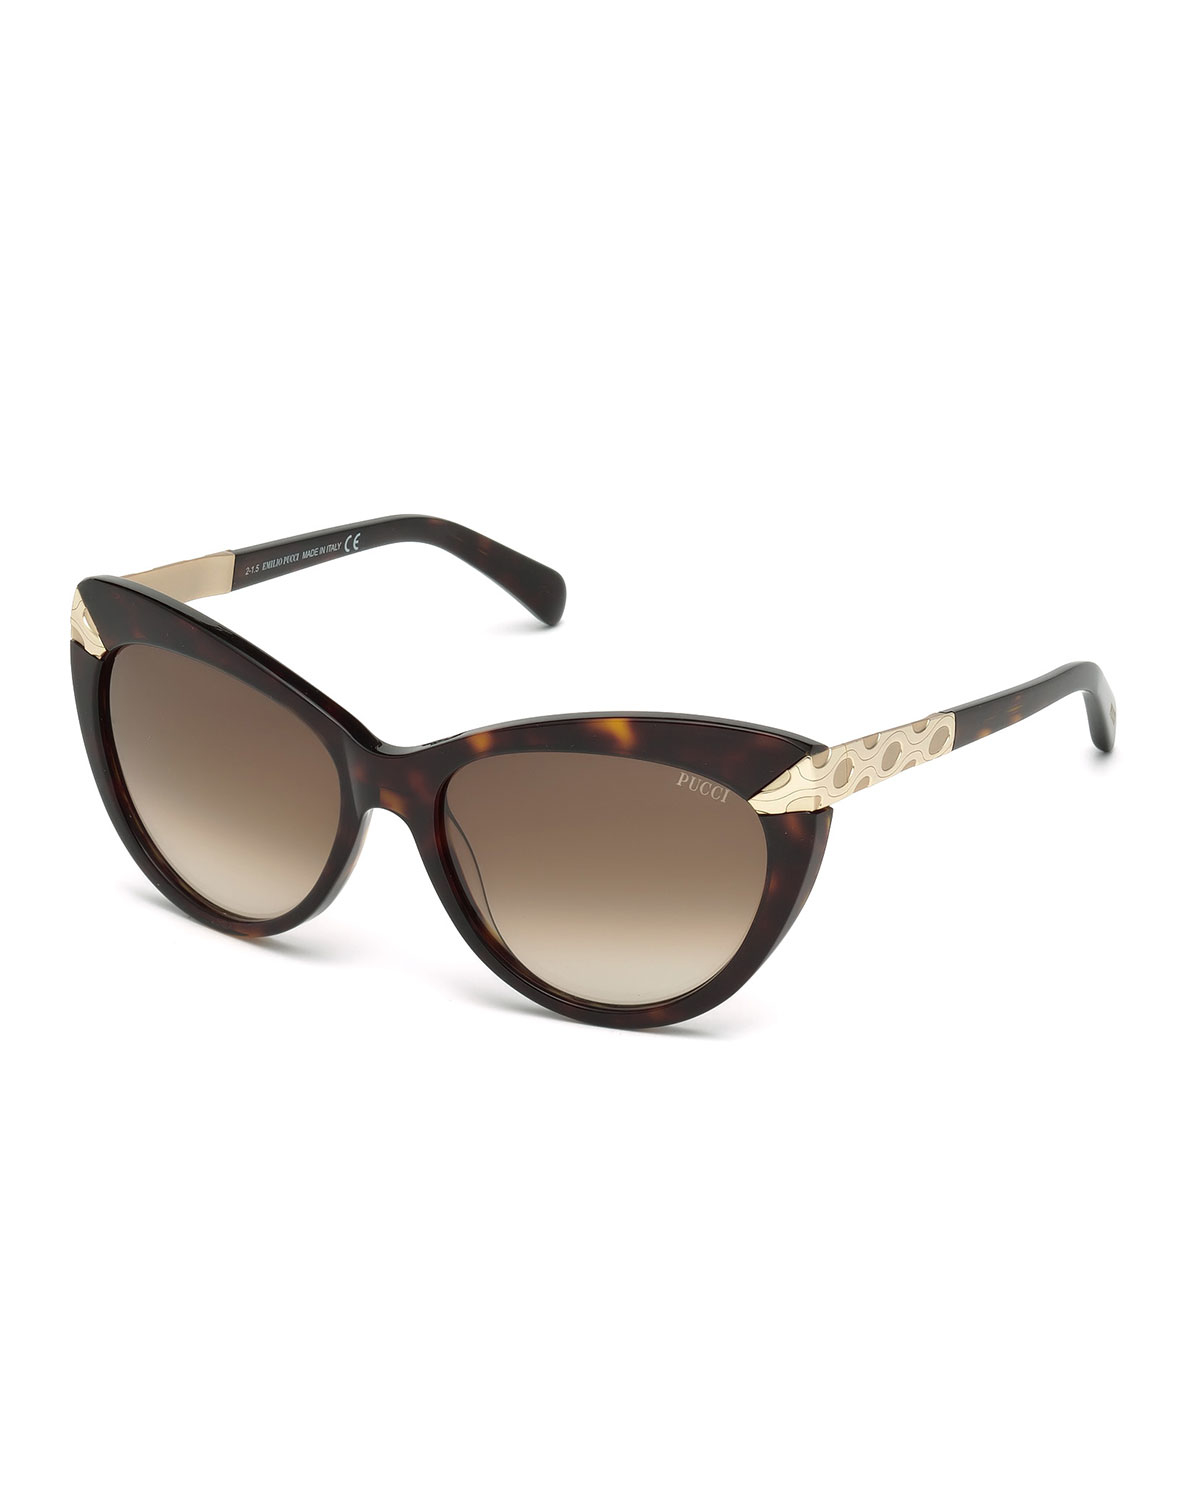 Kookai Glasses Frame : Emilio pucci Embossed-trim Cat-eye Sunglasses in Brown Lyst